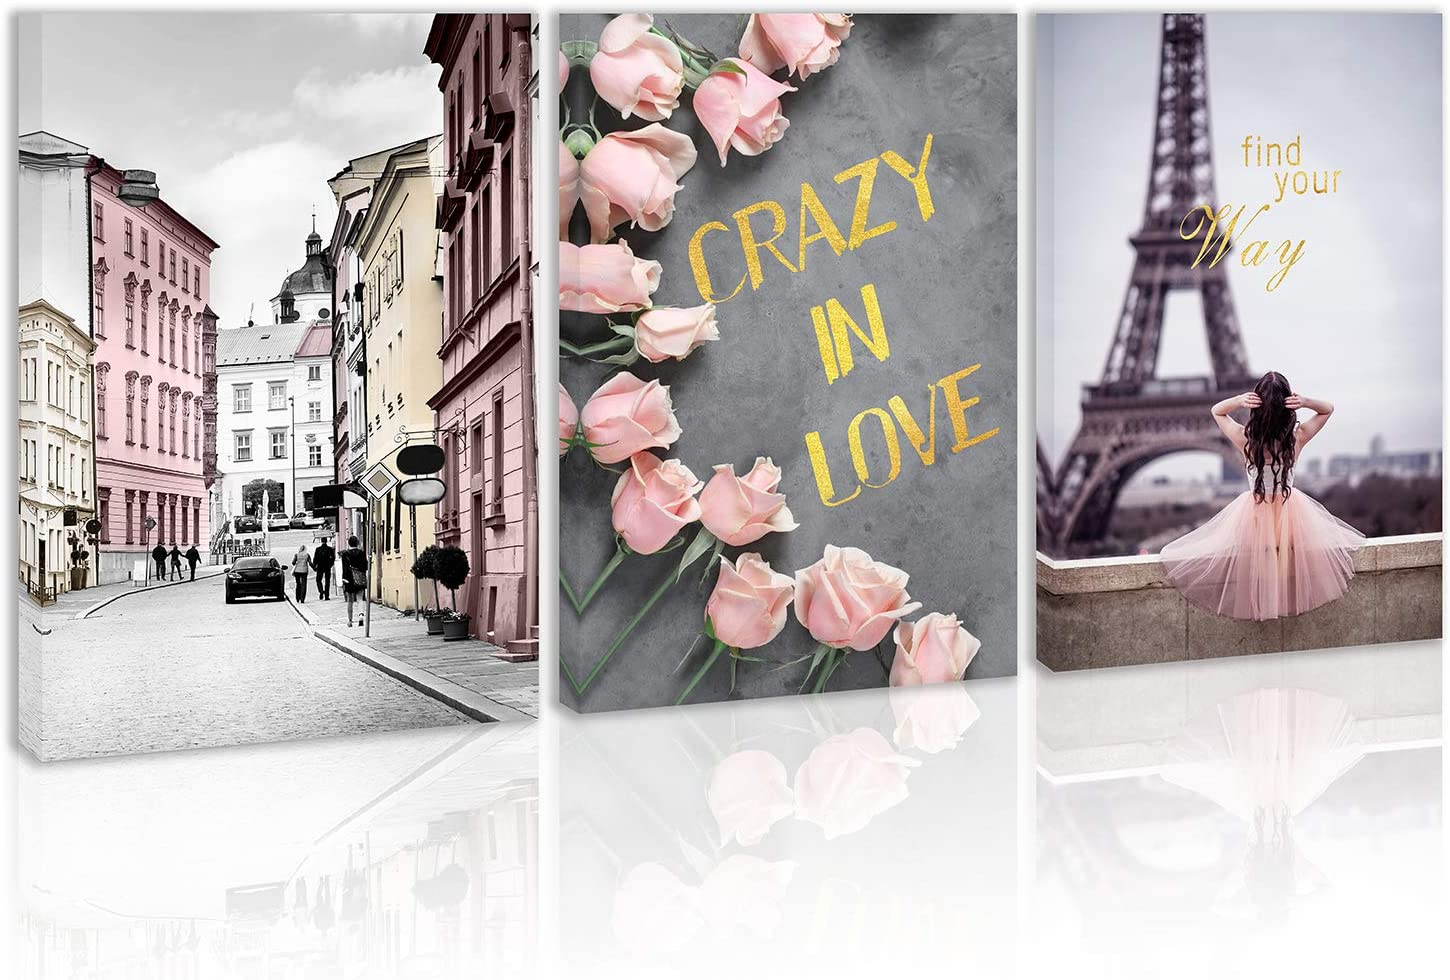 Girl Crazy in Love Eiffel Tower Wall Art Decor Pink Rose Canvas Painting Kitchen Street View of France Building Prints Pictures for Home Living Dining Room